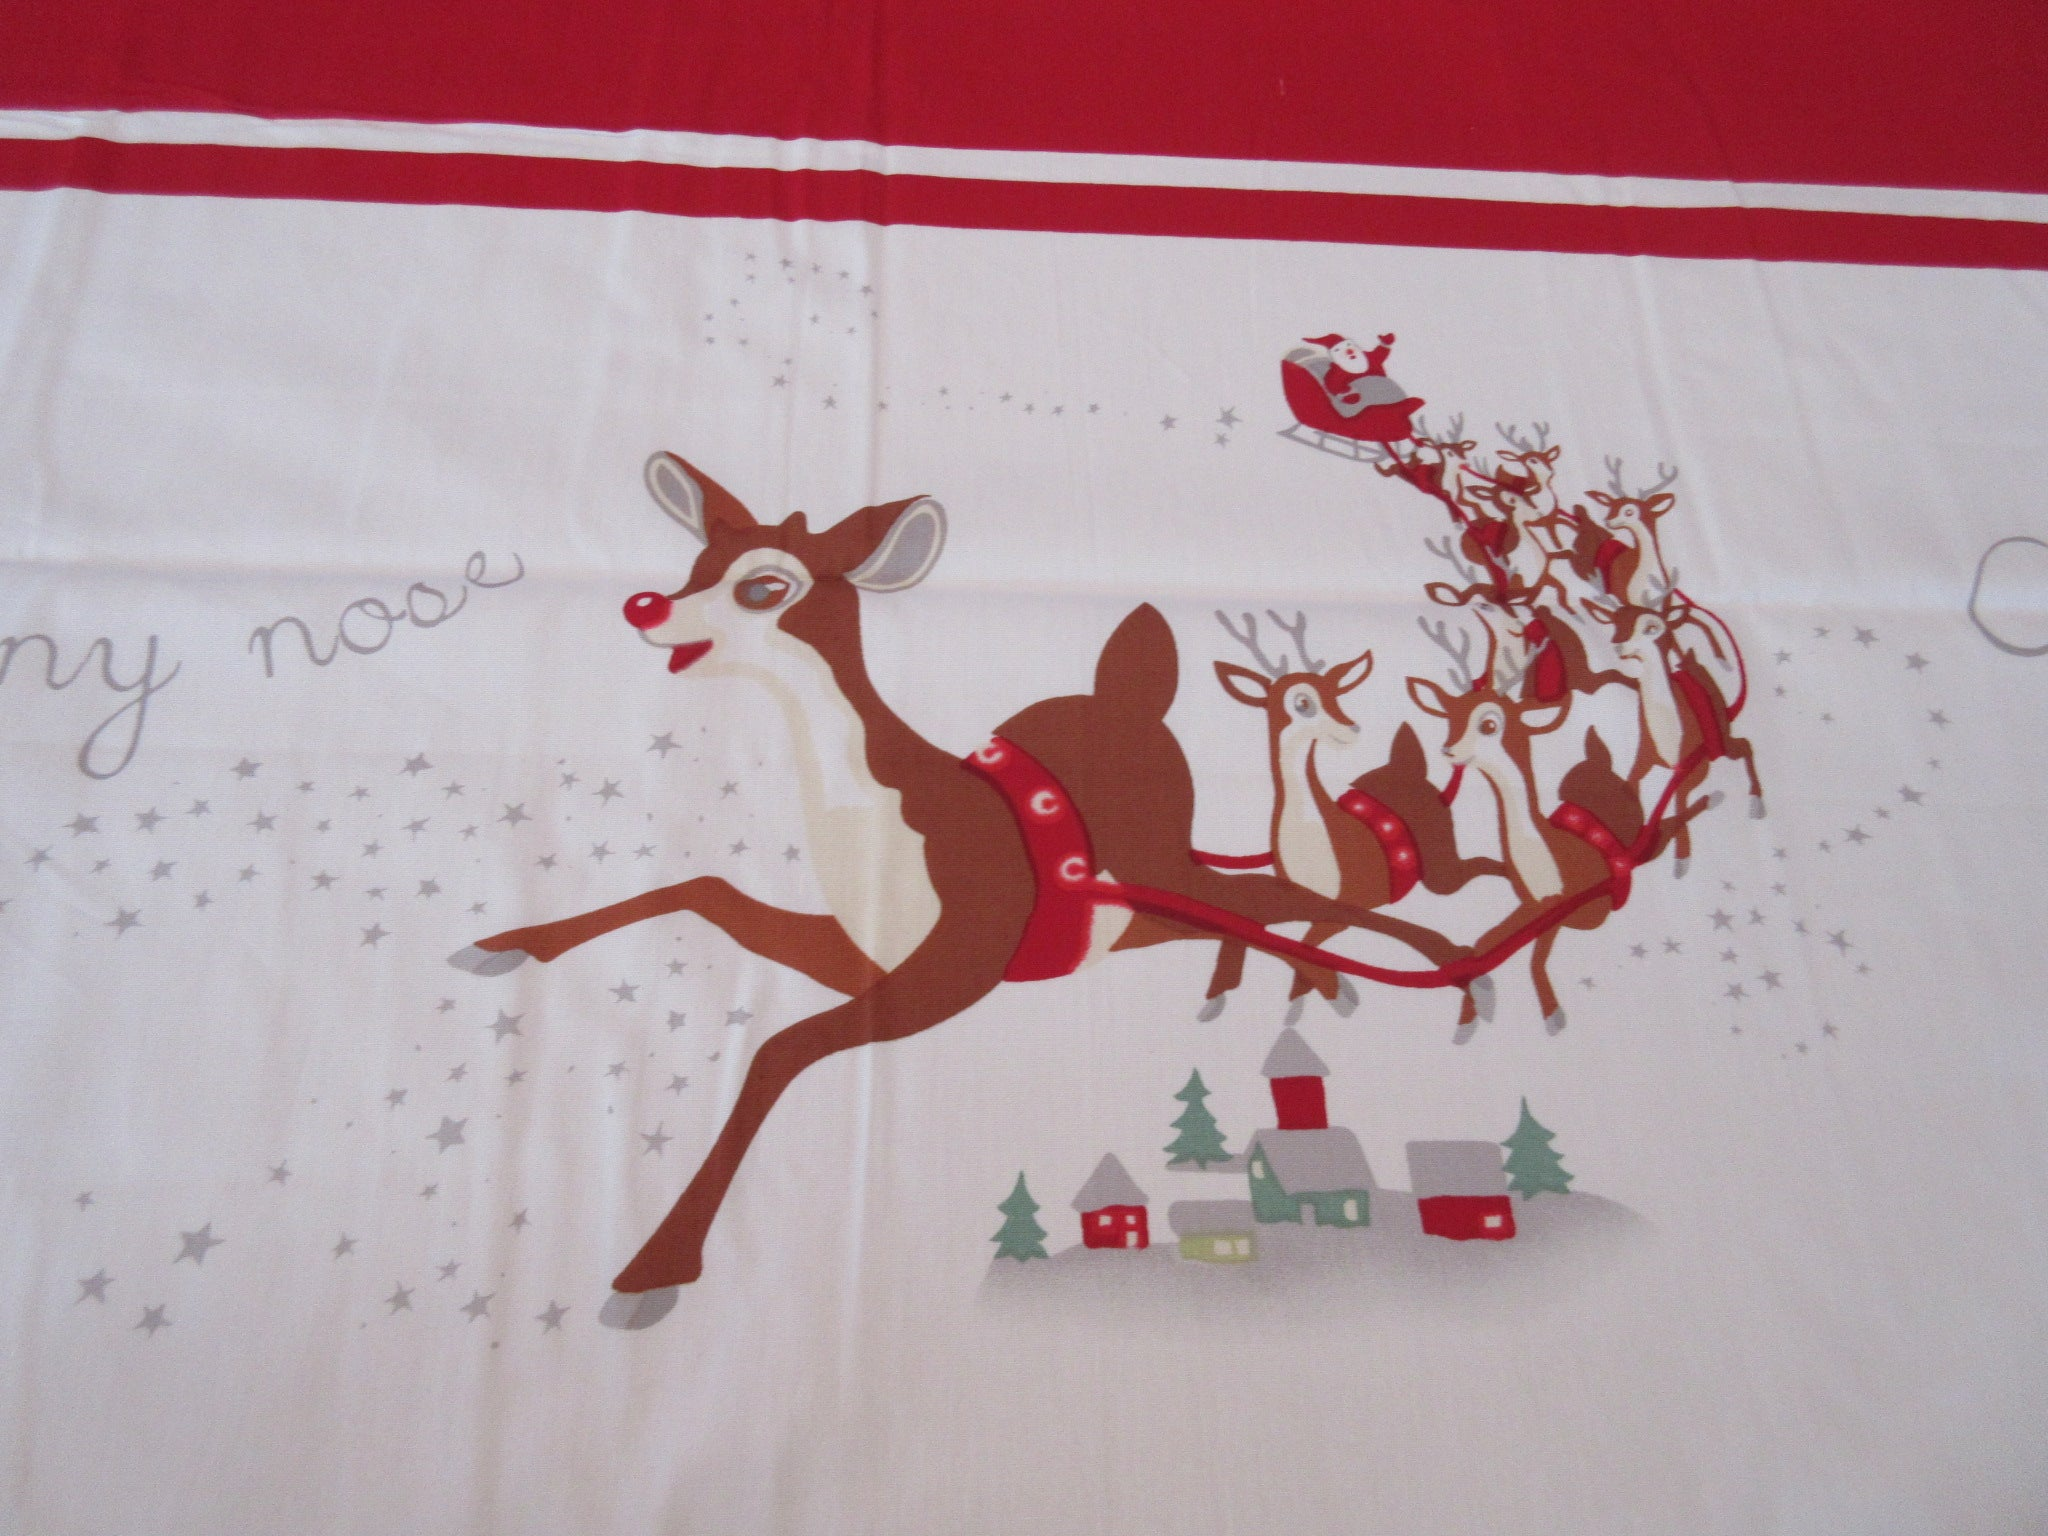 Vintage Inspired Pottery Barn Kids Rudolph Christmas Novelty Vintage Printed Tablecloth (90 X 68)